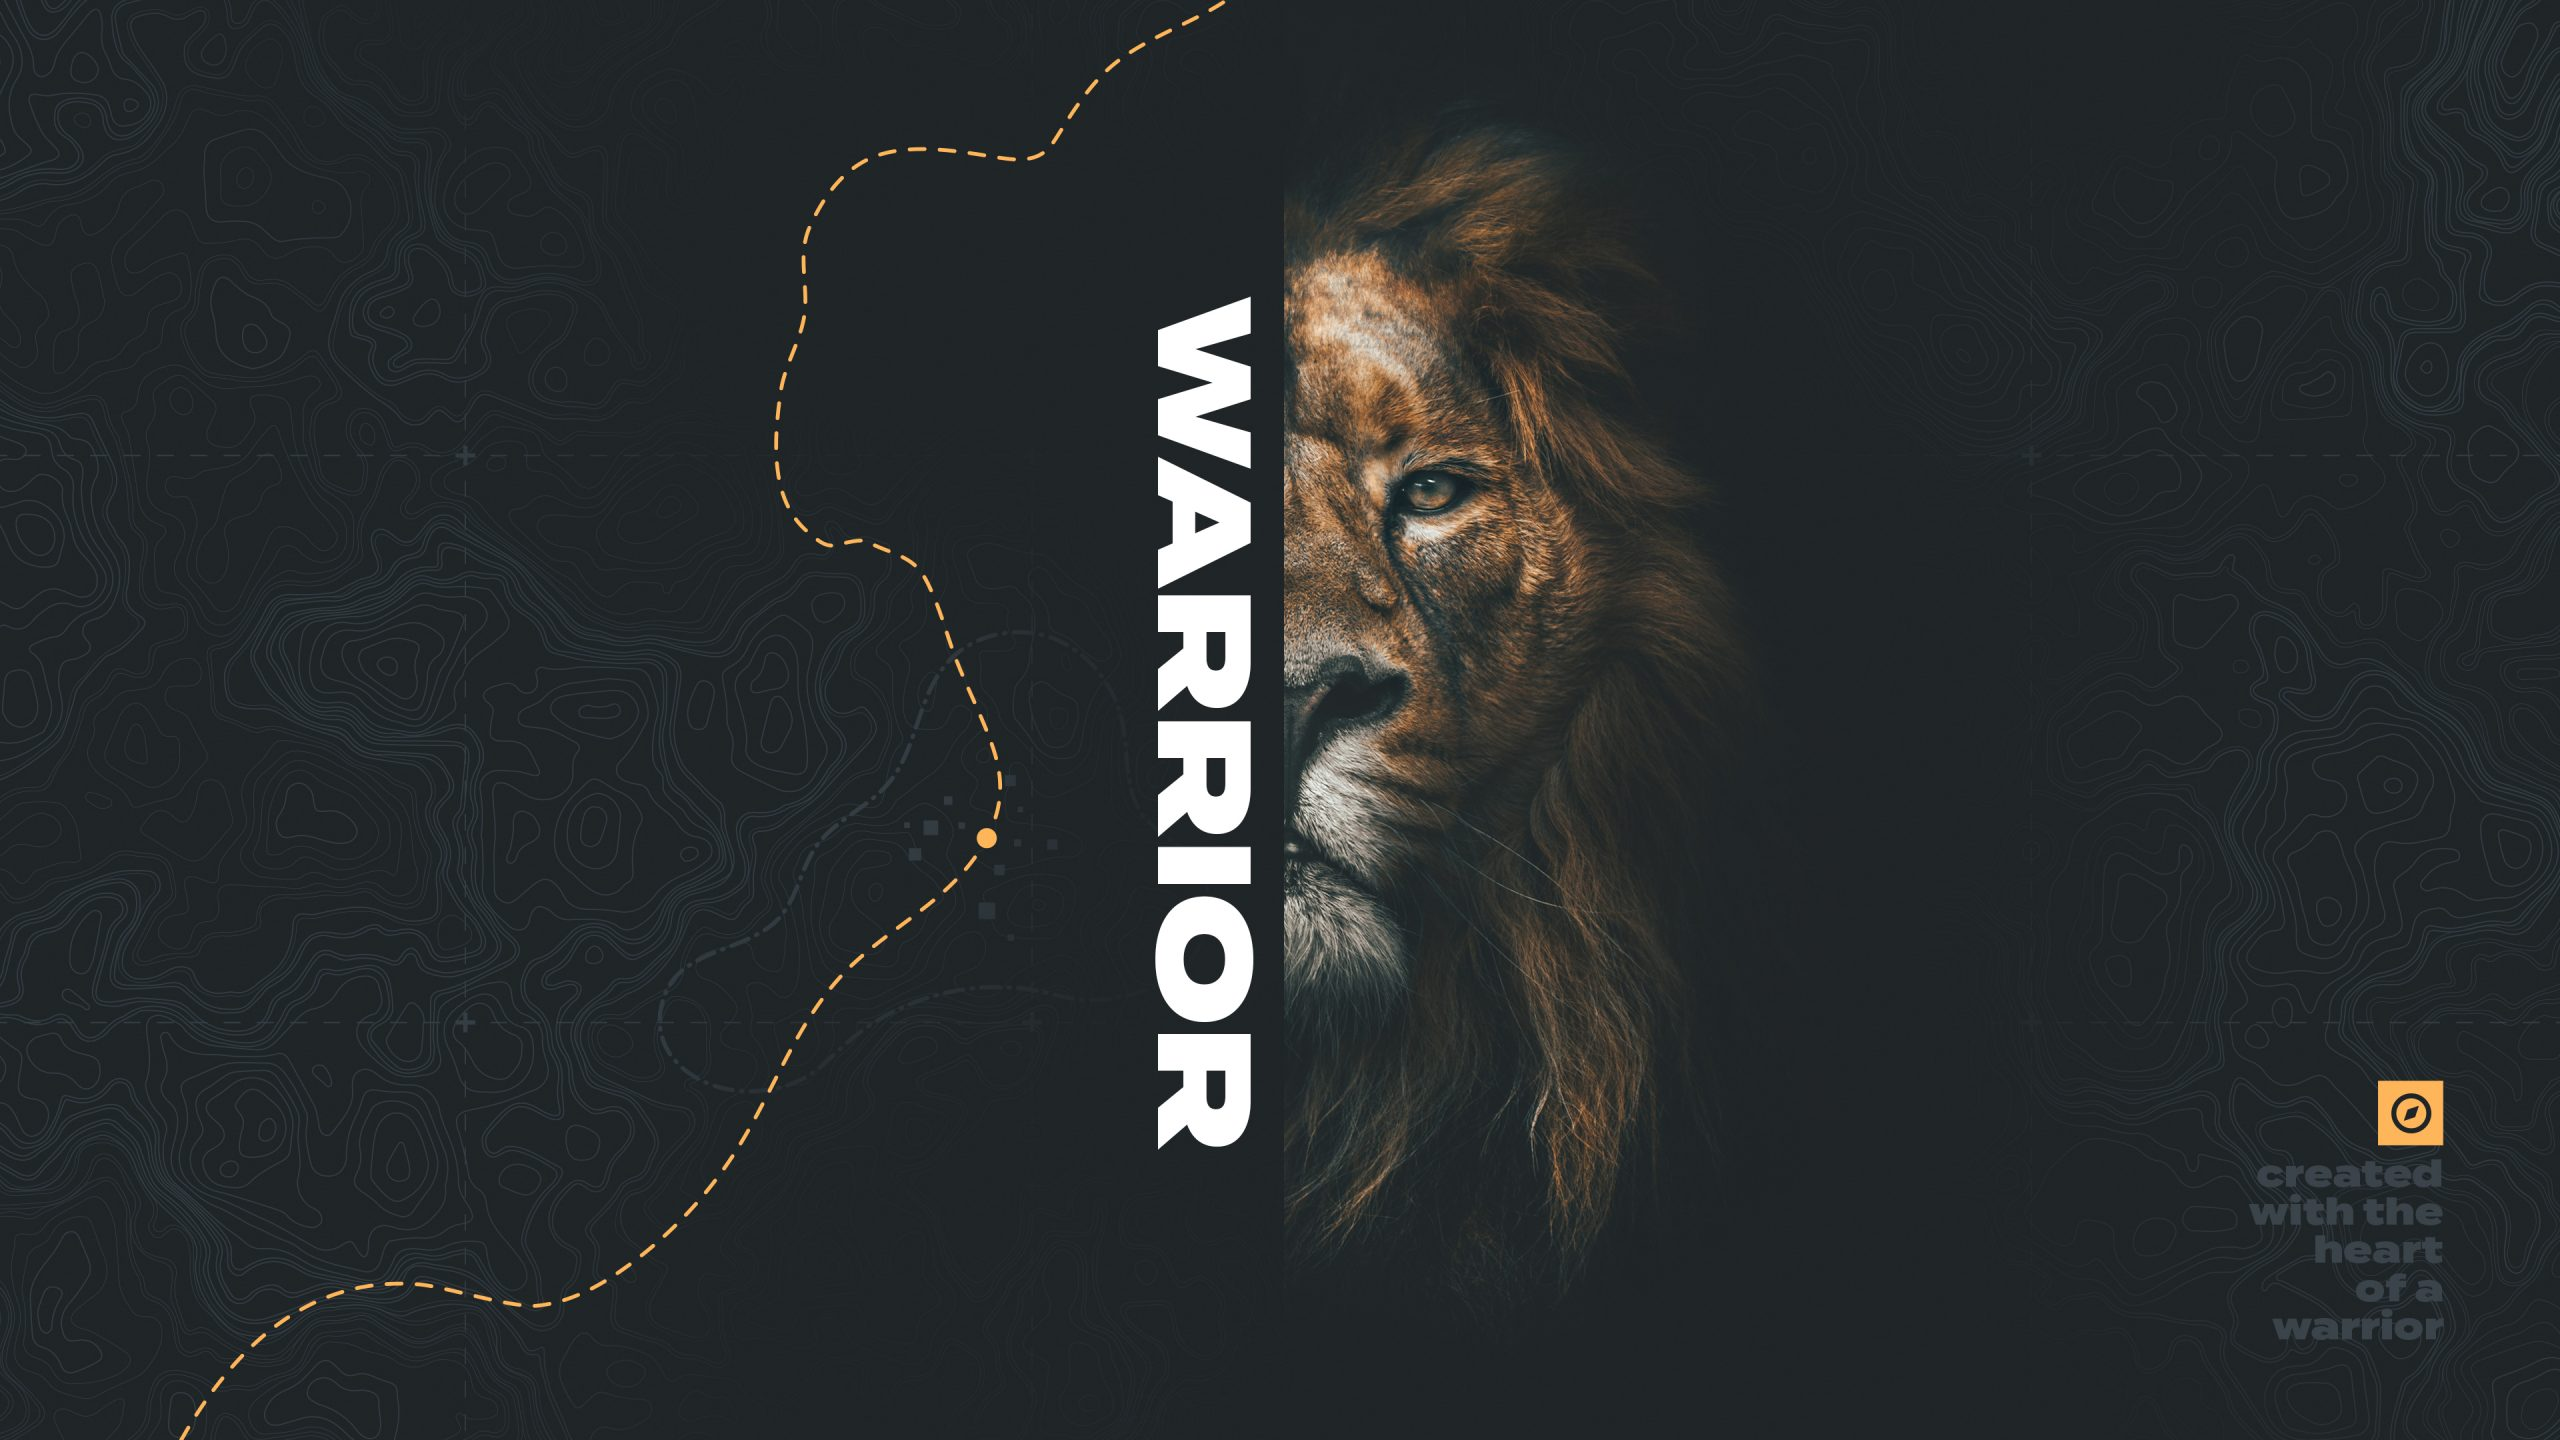 Warrior – Part 3 of a 4 Part Series